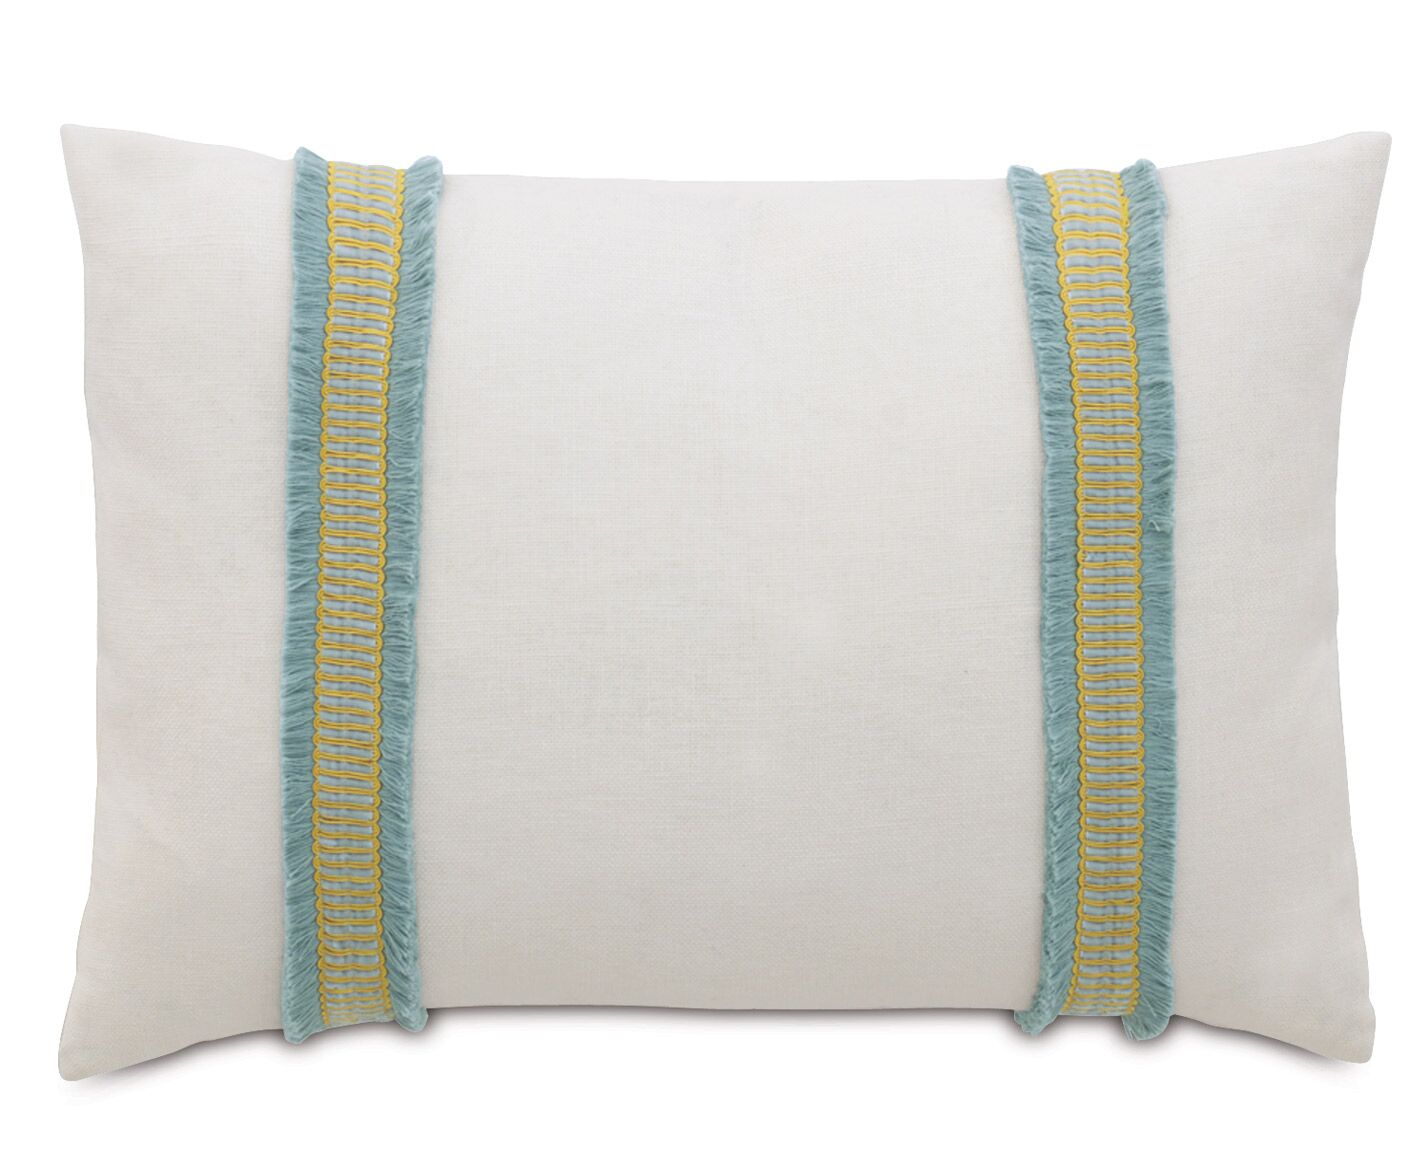 Magnolia Lumbar Pillow